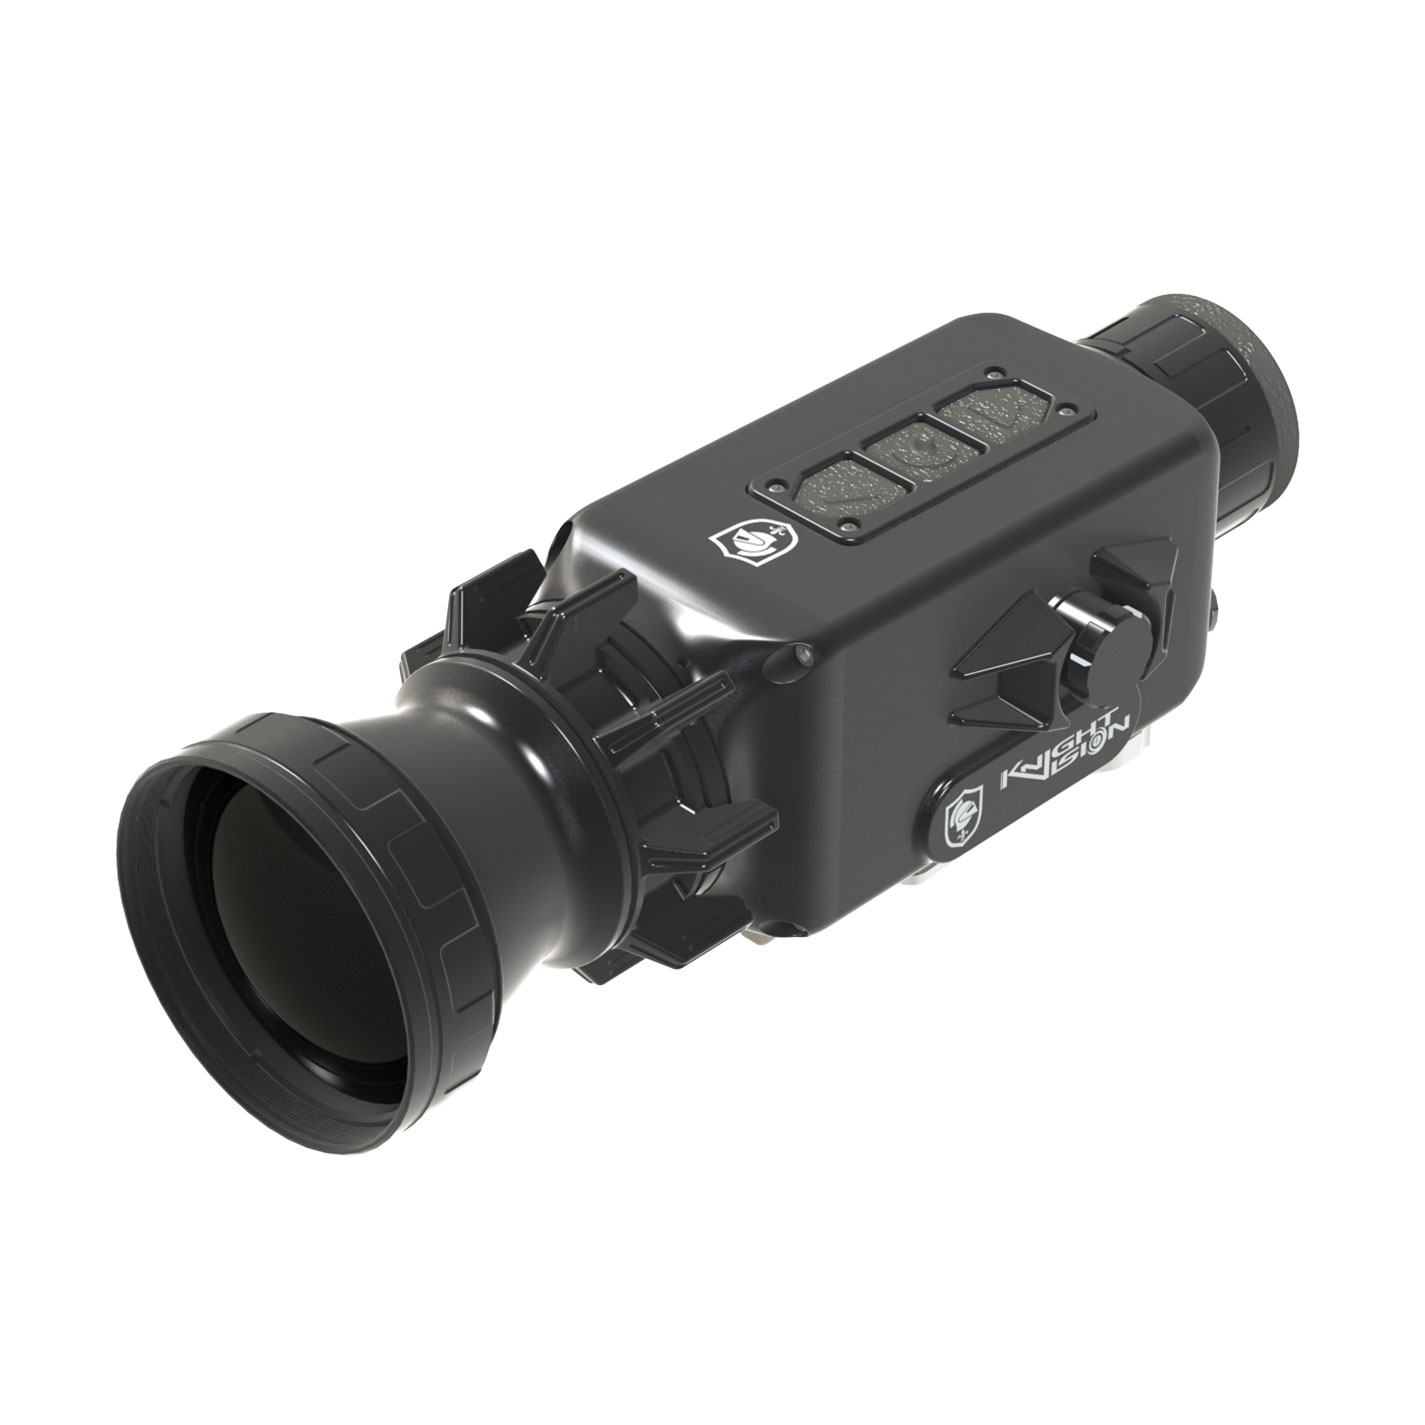 KNIGHT VISION® UNS-Ts Clip-On Thermal Weapon Sight